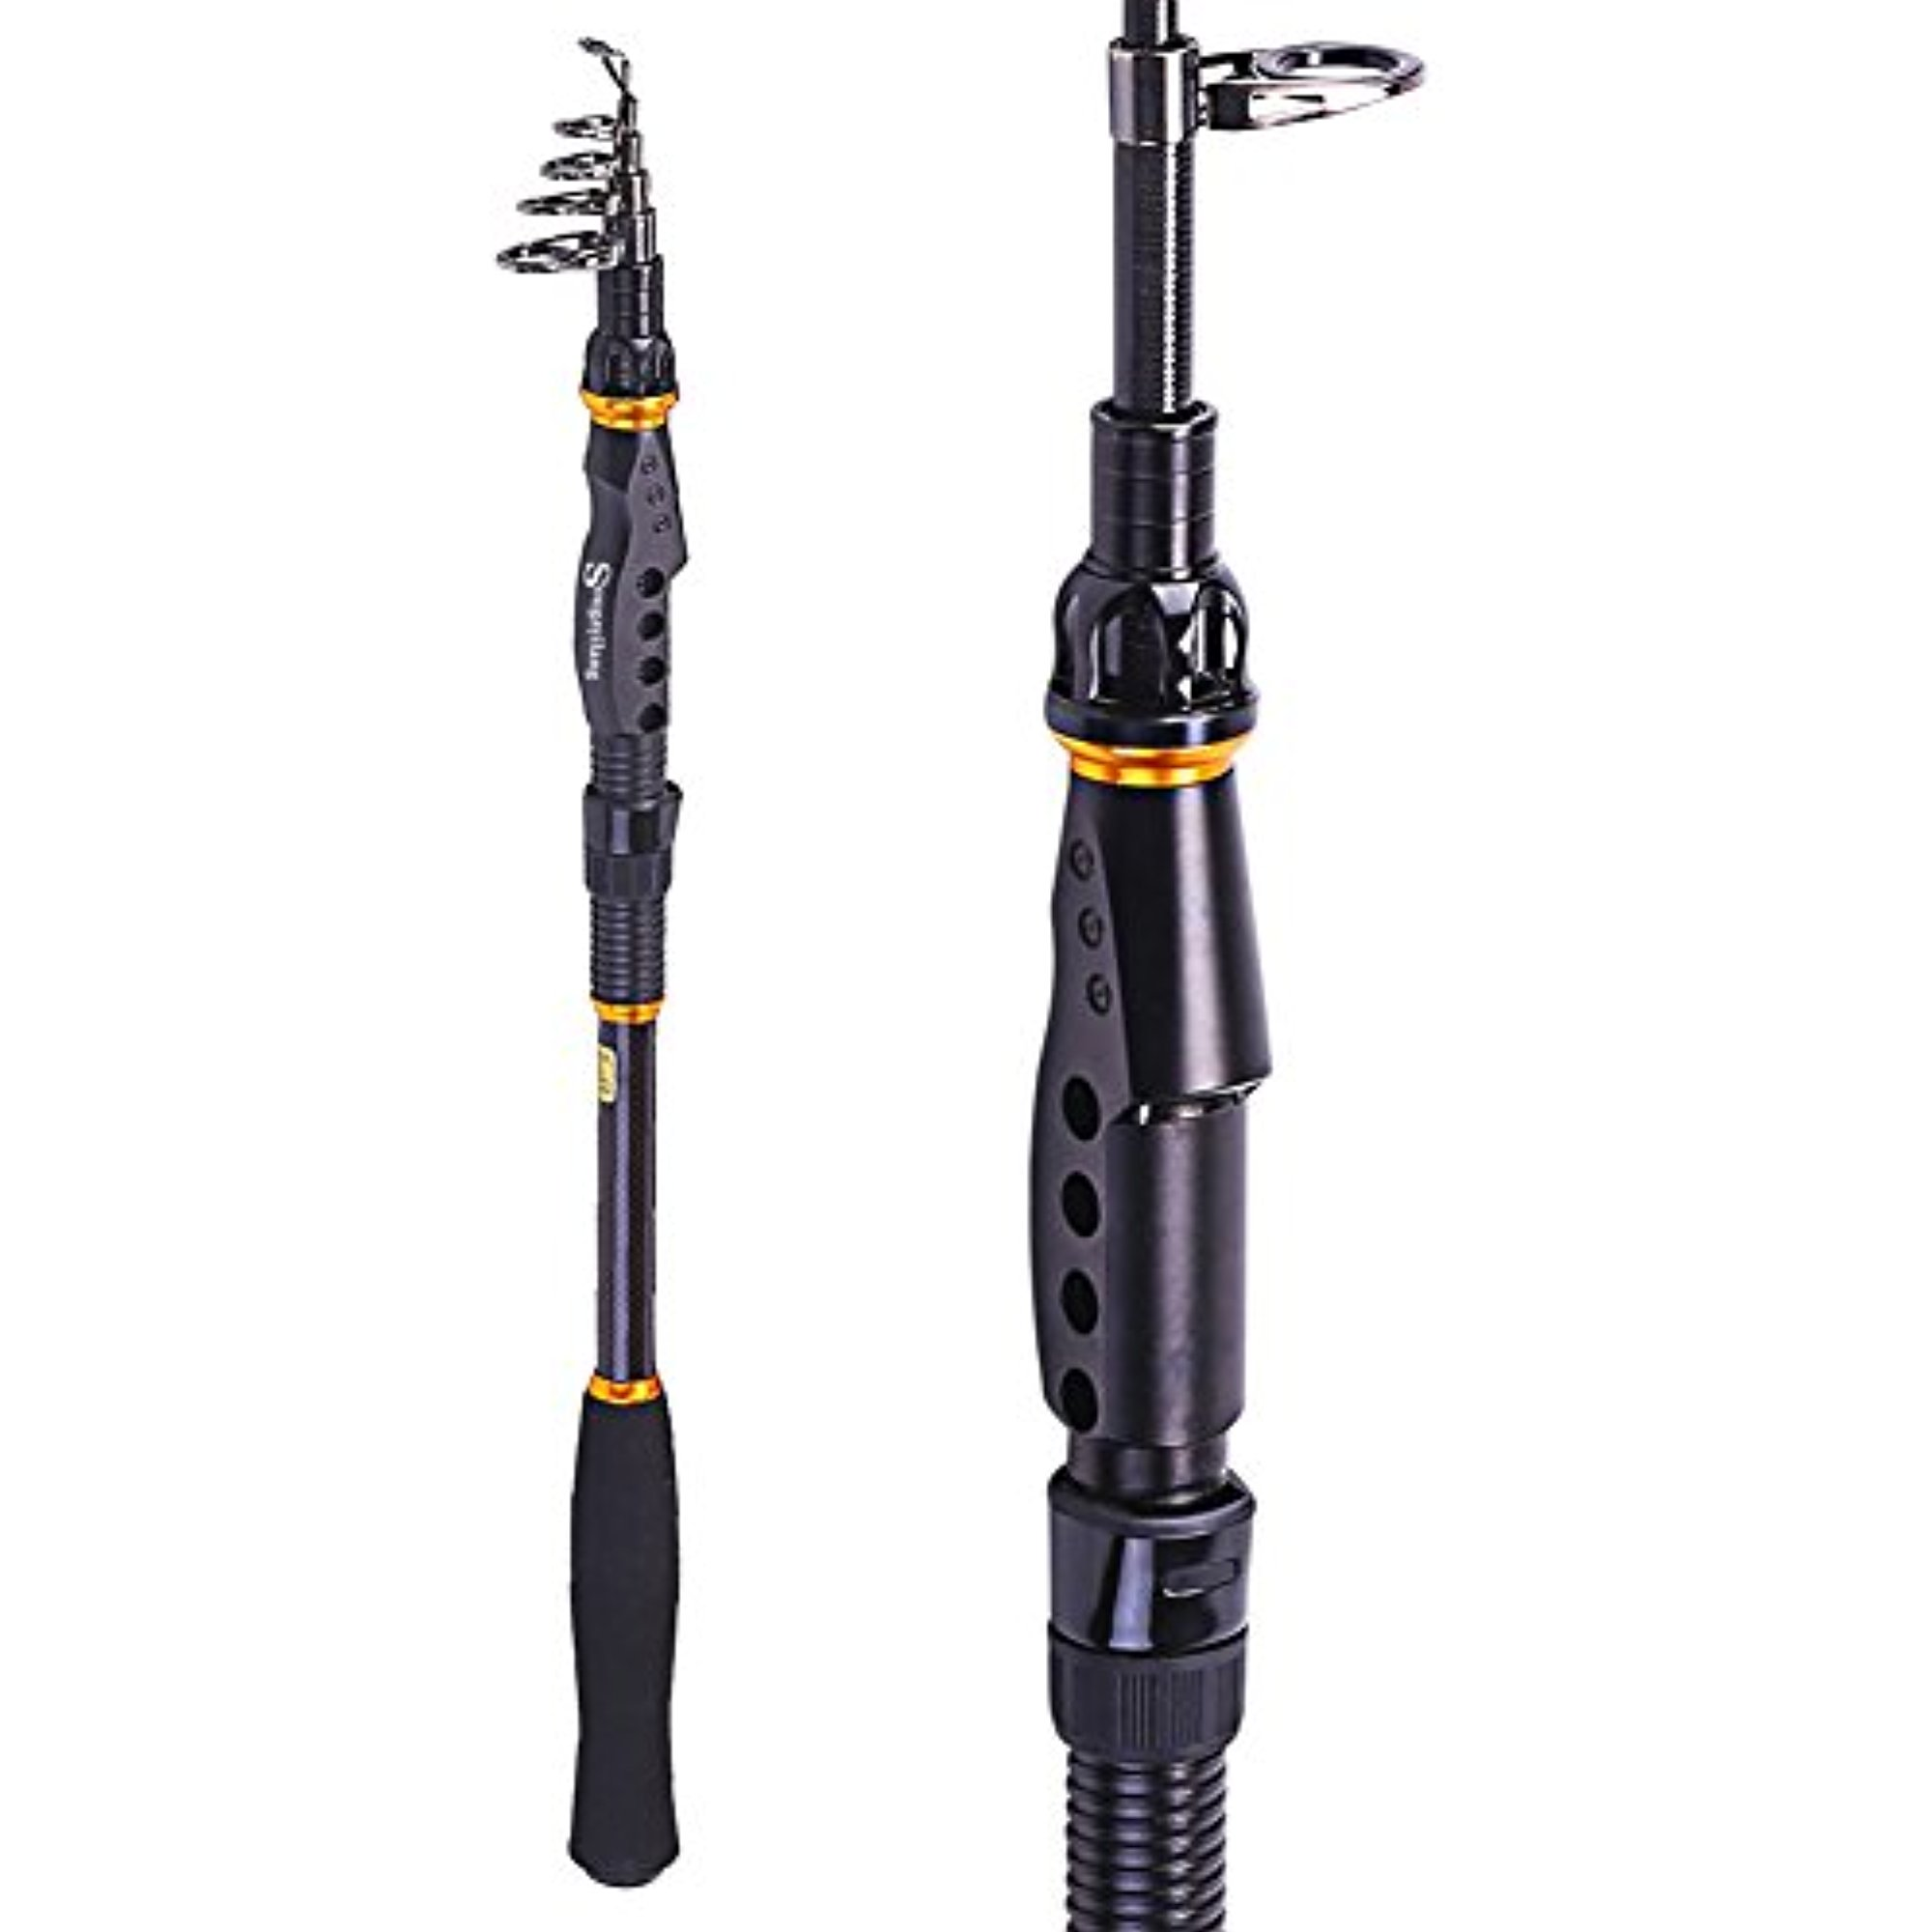 Sougayilang Fishing Rod Graphite Portable Spinning Telescopic Fishing Pole 2.1M 6.89Ft by Sougayilang